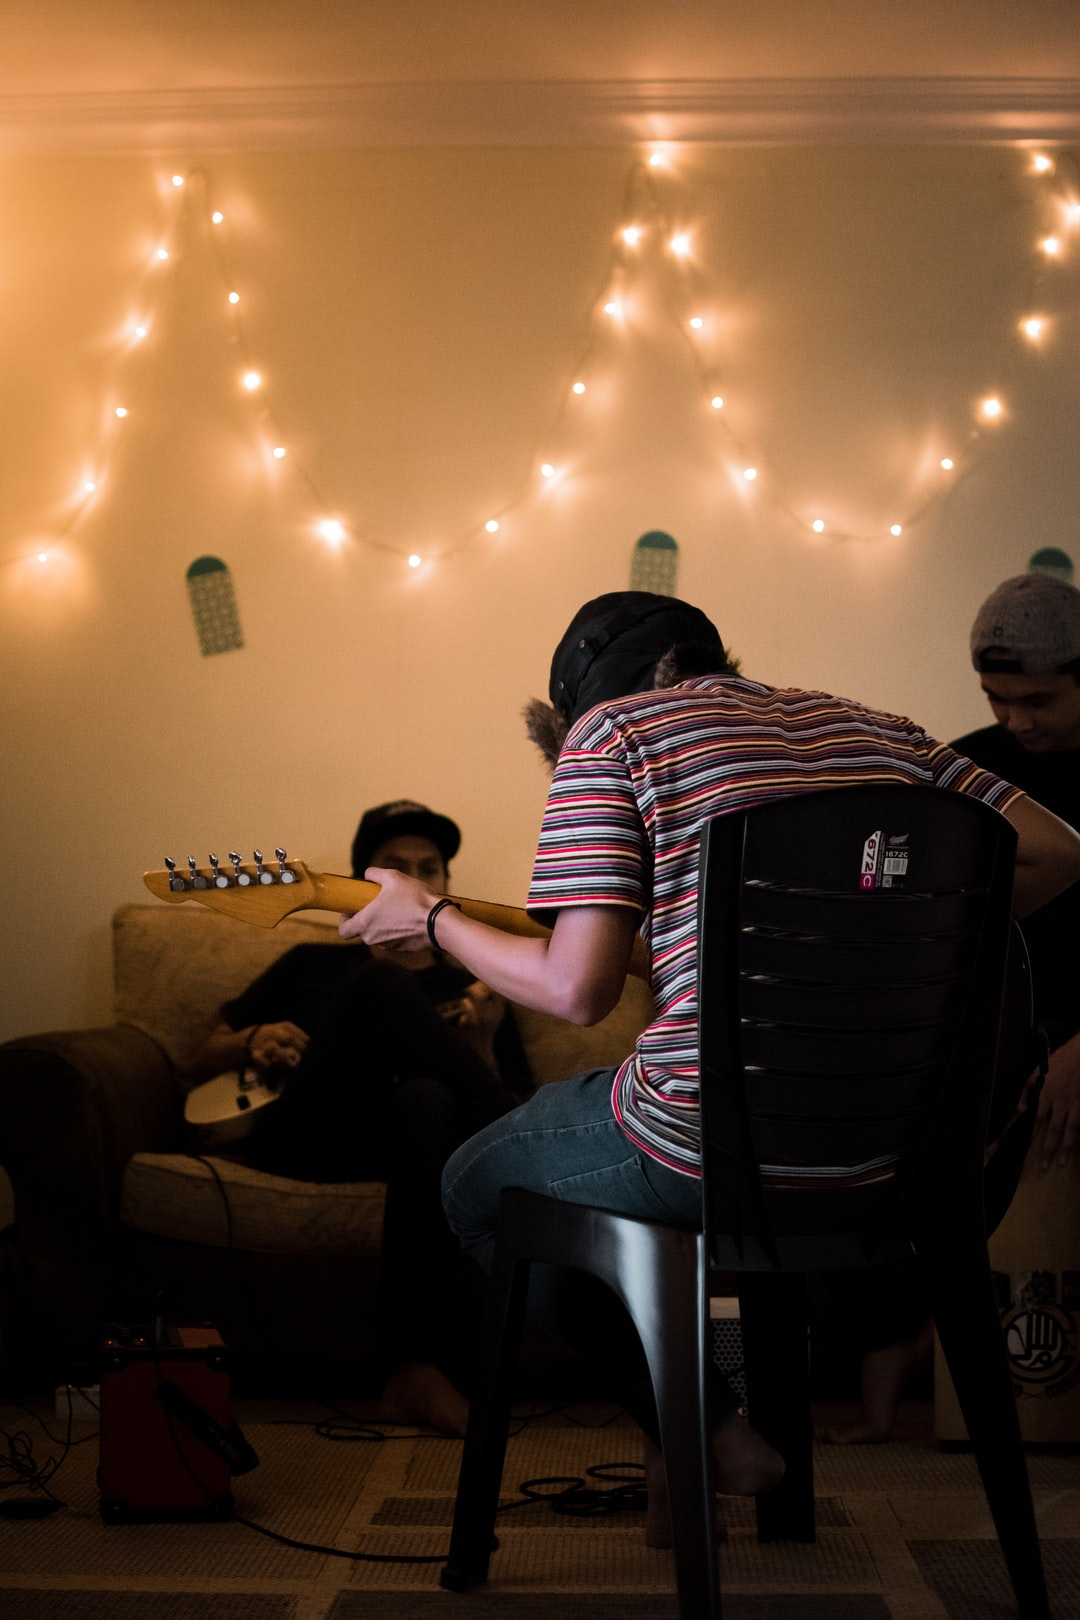 Jamming with friends